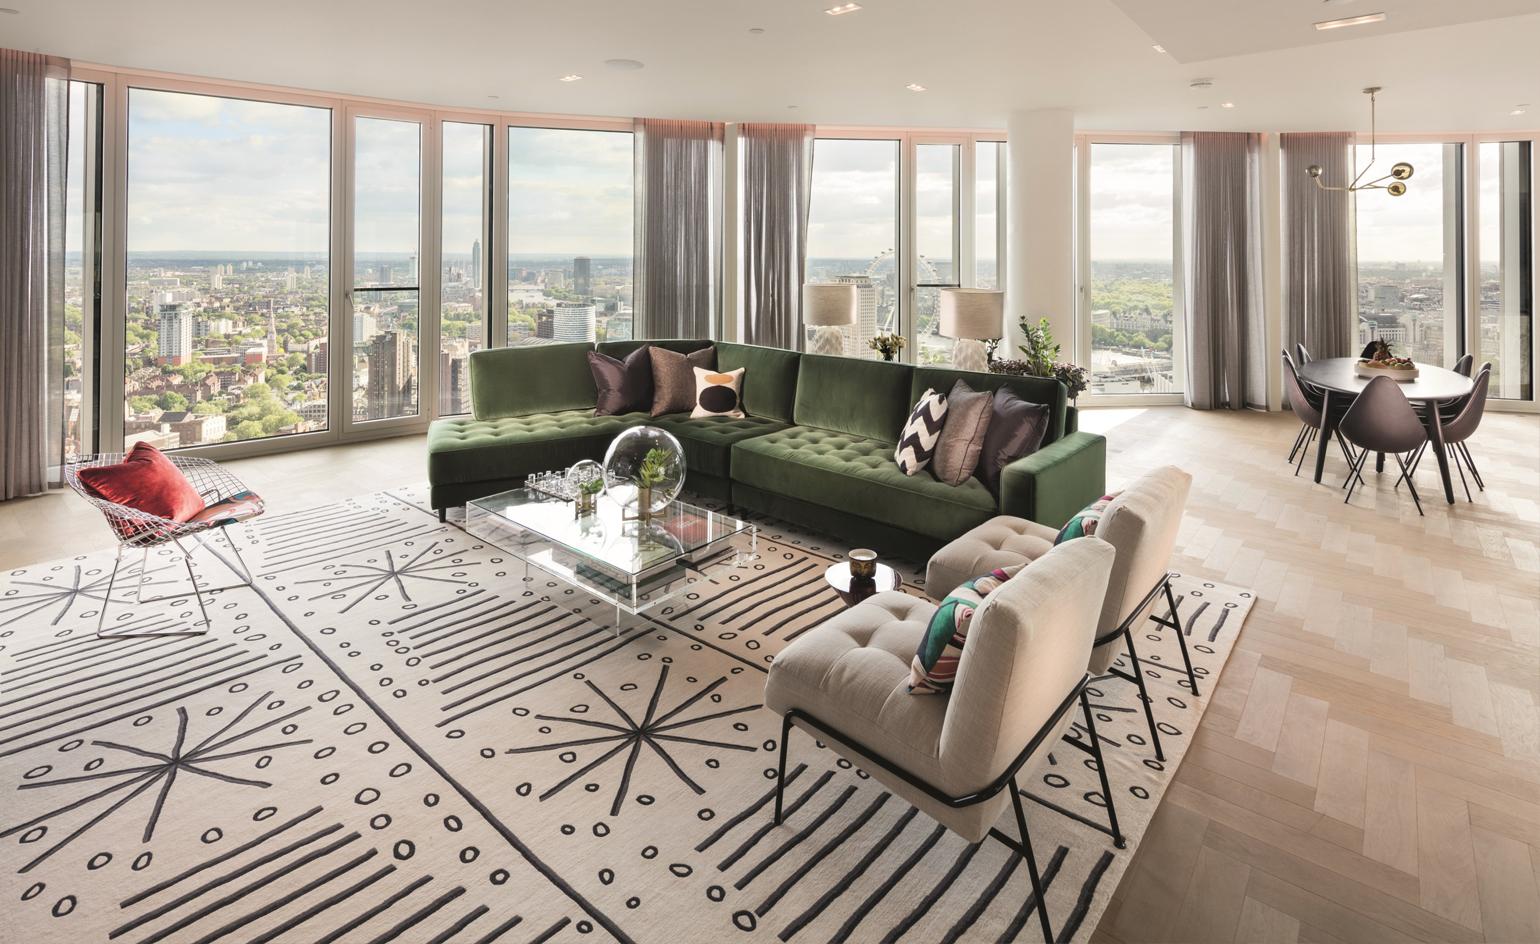 South bank tower 39 s refitted interiors revealed wallpaper for London interiors